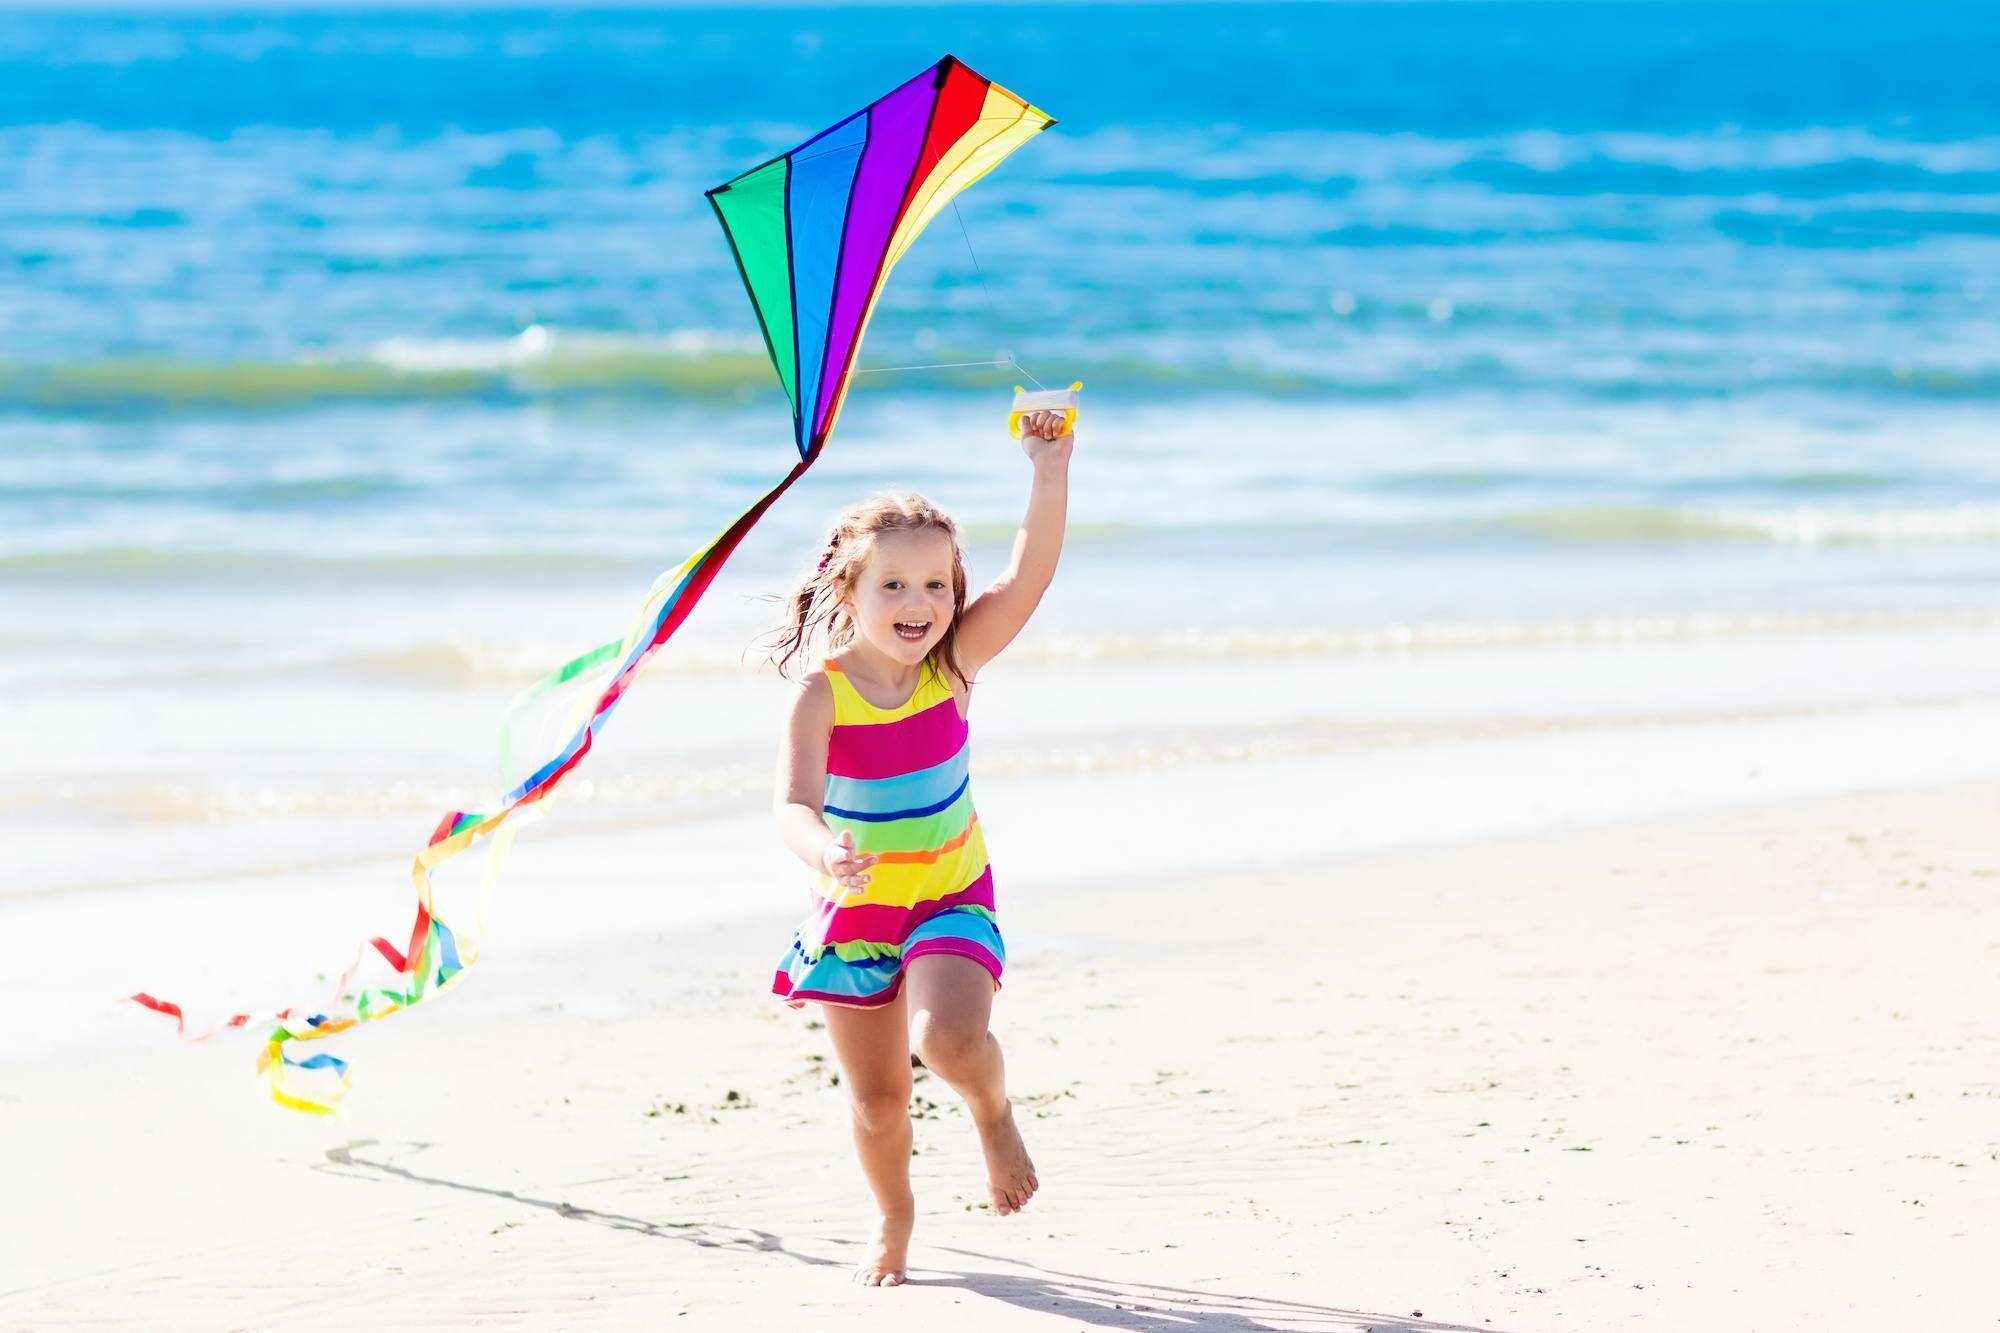 girl with kite on beach